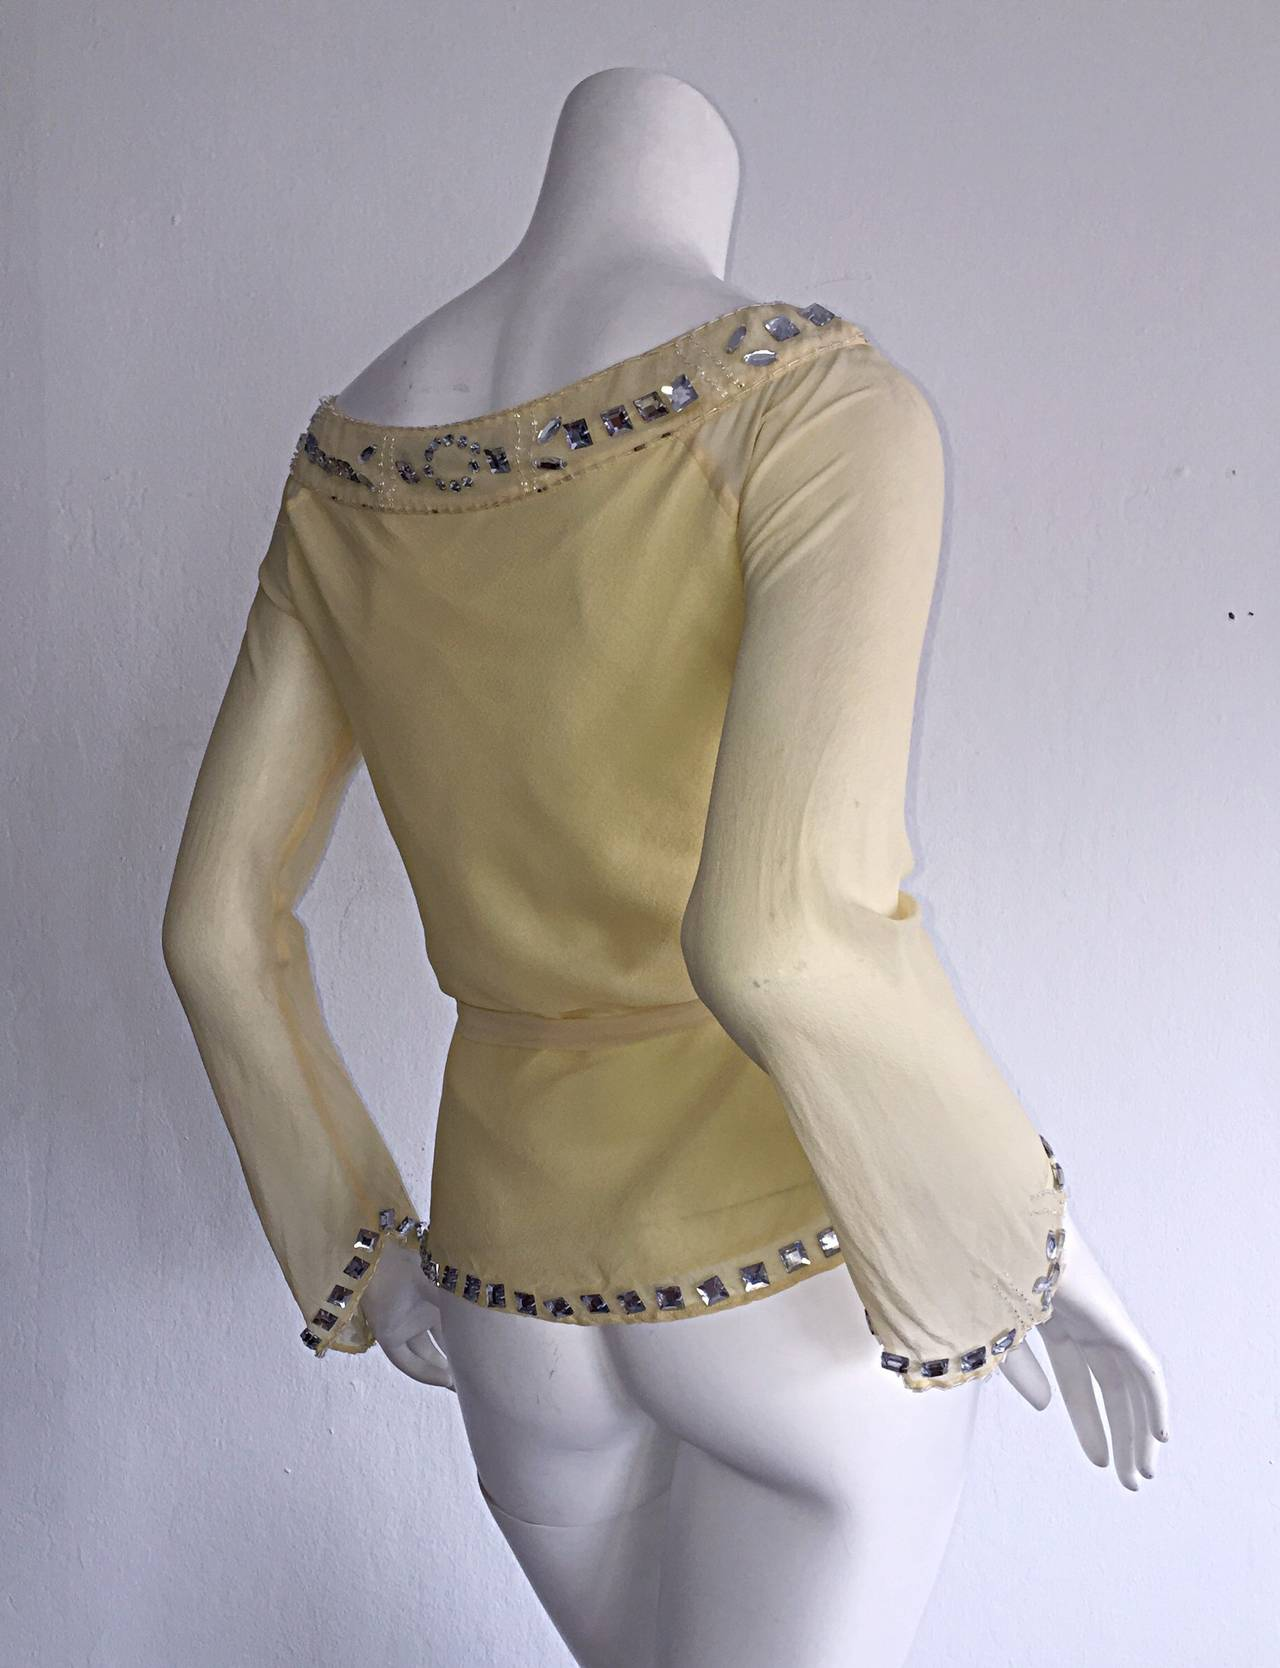 Women's 1990s Vintage Chloe by Karl Lagerfeld Yellow Chiffon Angel Blouse w/ Rhinestones For Sale